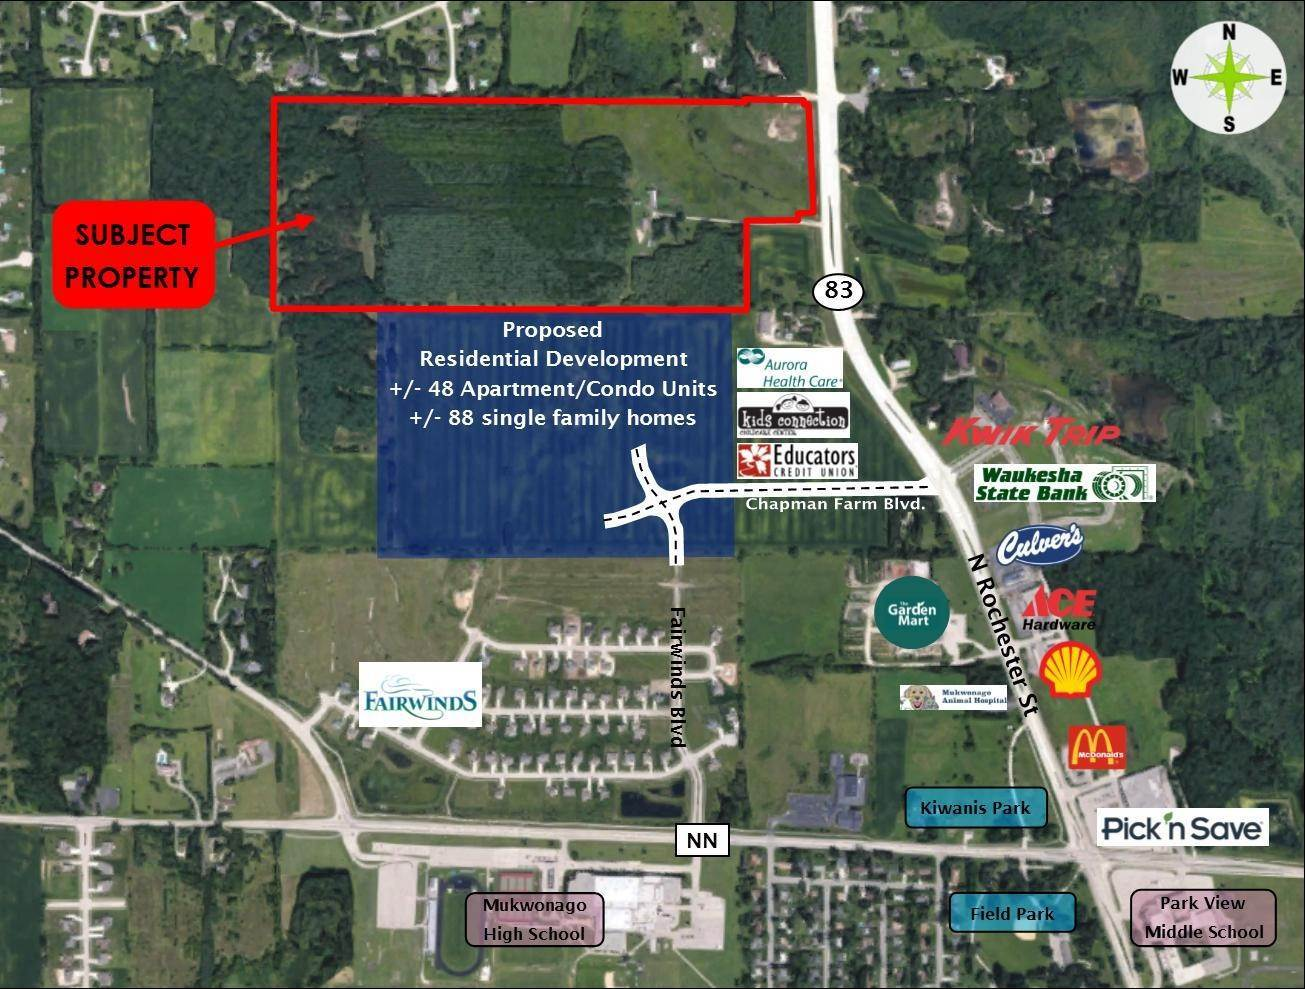 Land for Sale at Lt0 Hwy 83 Mukwonago, Wisconsin 53149 United States